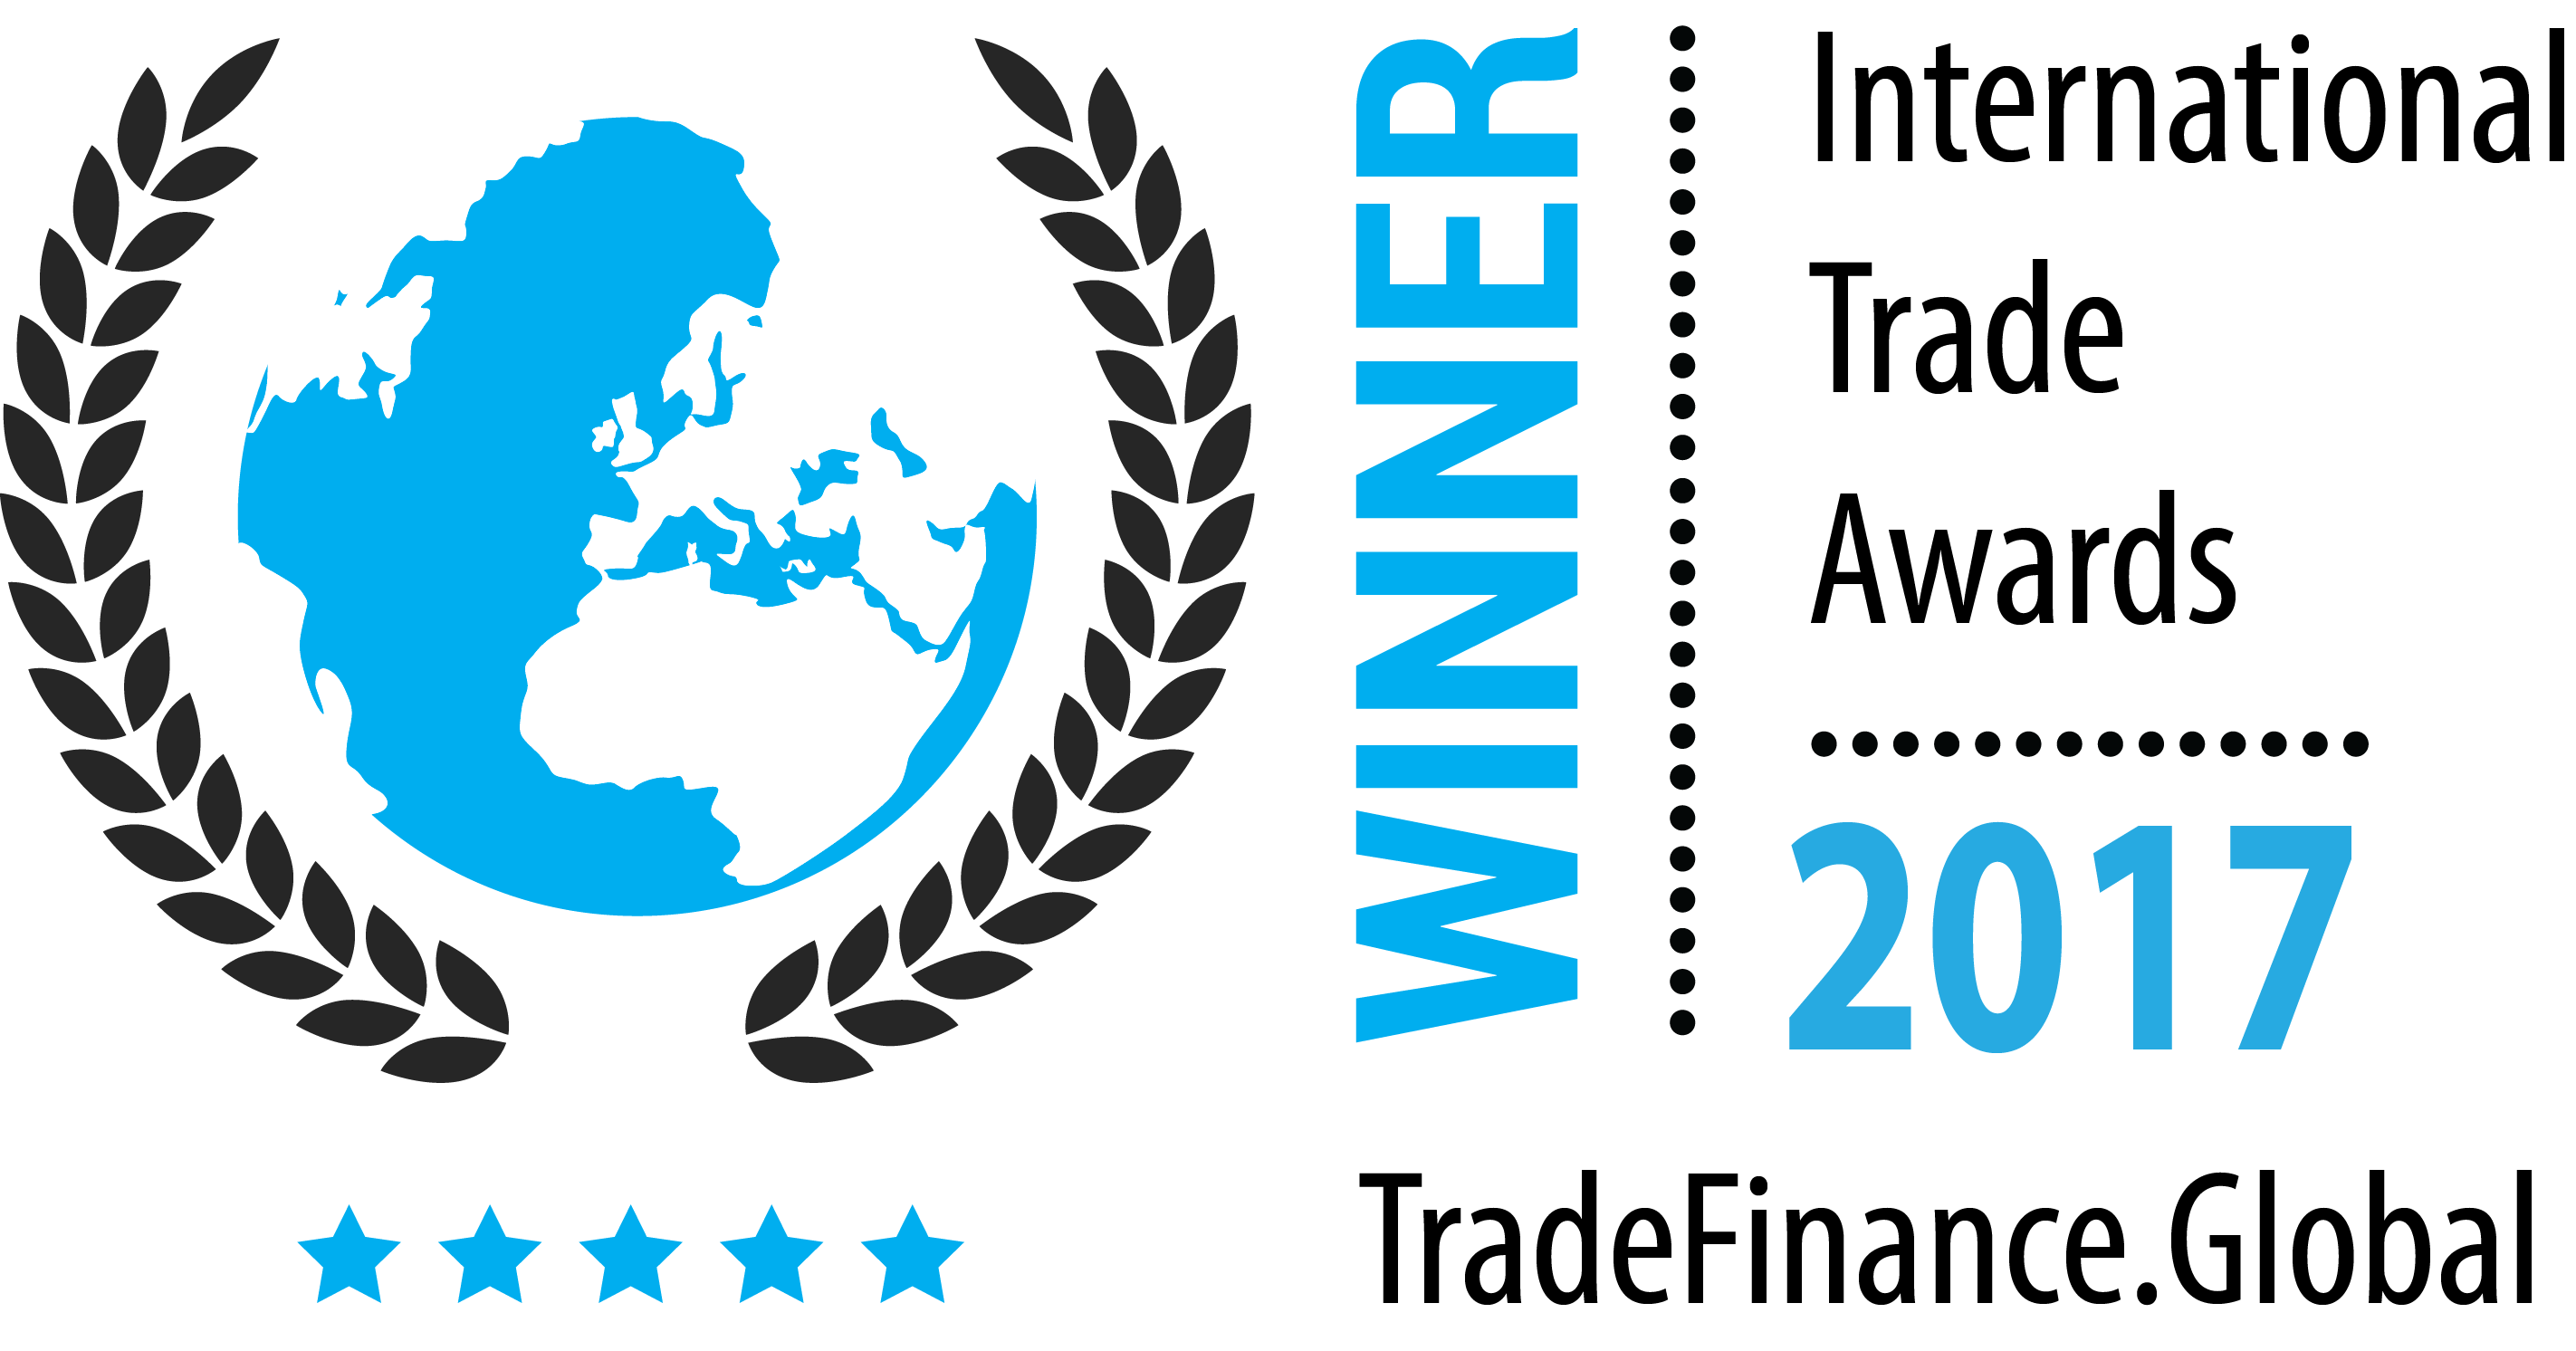 ANNOUNCED: Winner of the TFG International Trade Awards 2017